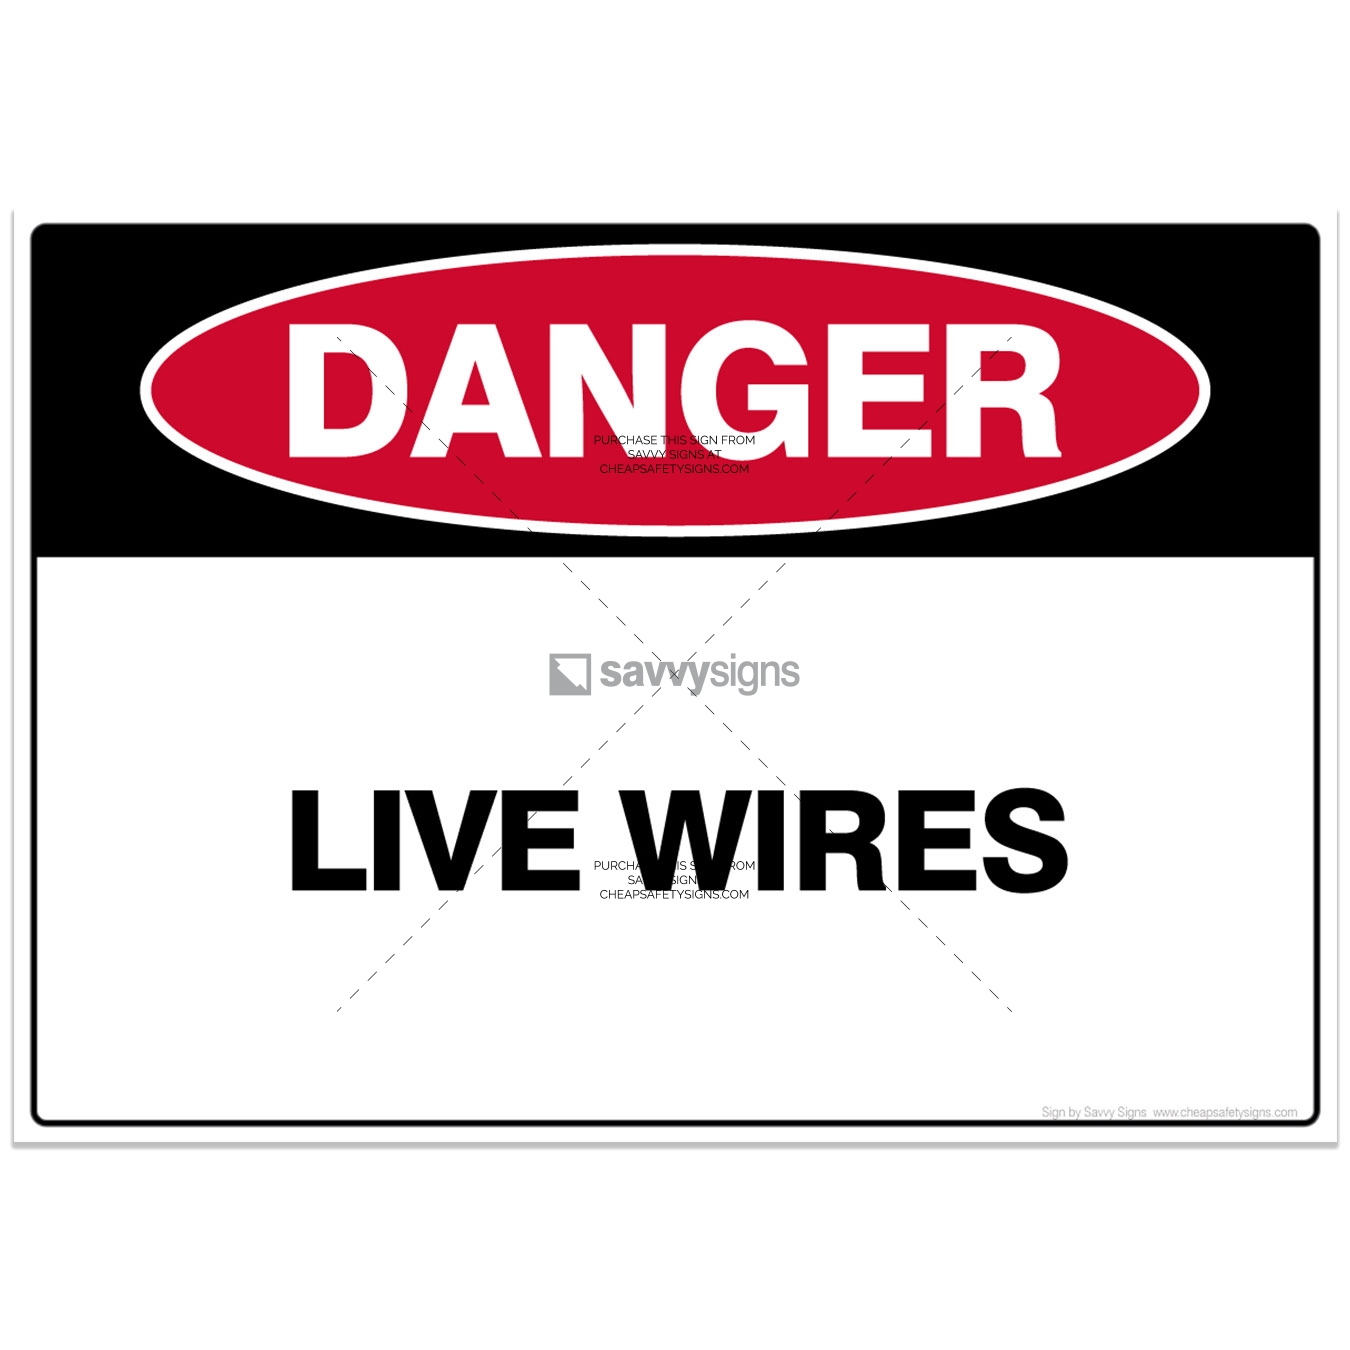 SSDAN3055-DANGER-Workplace-Safety-Signs_Savvy-Signs_v4.1